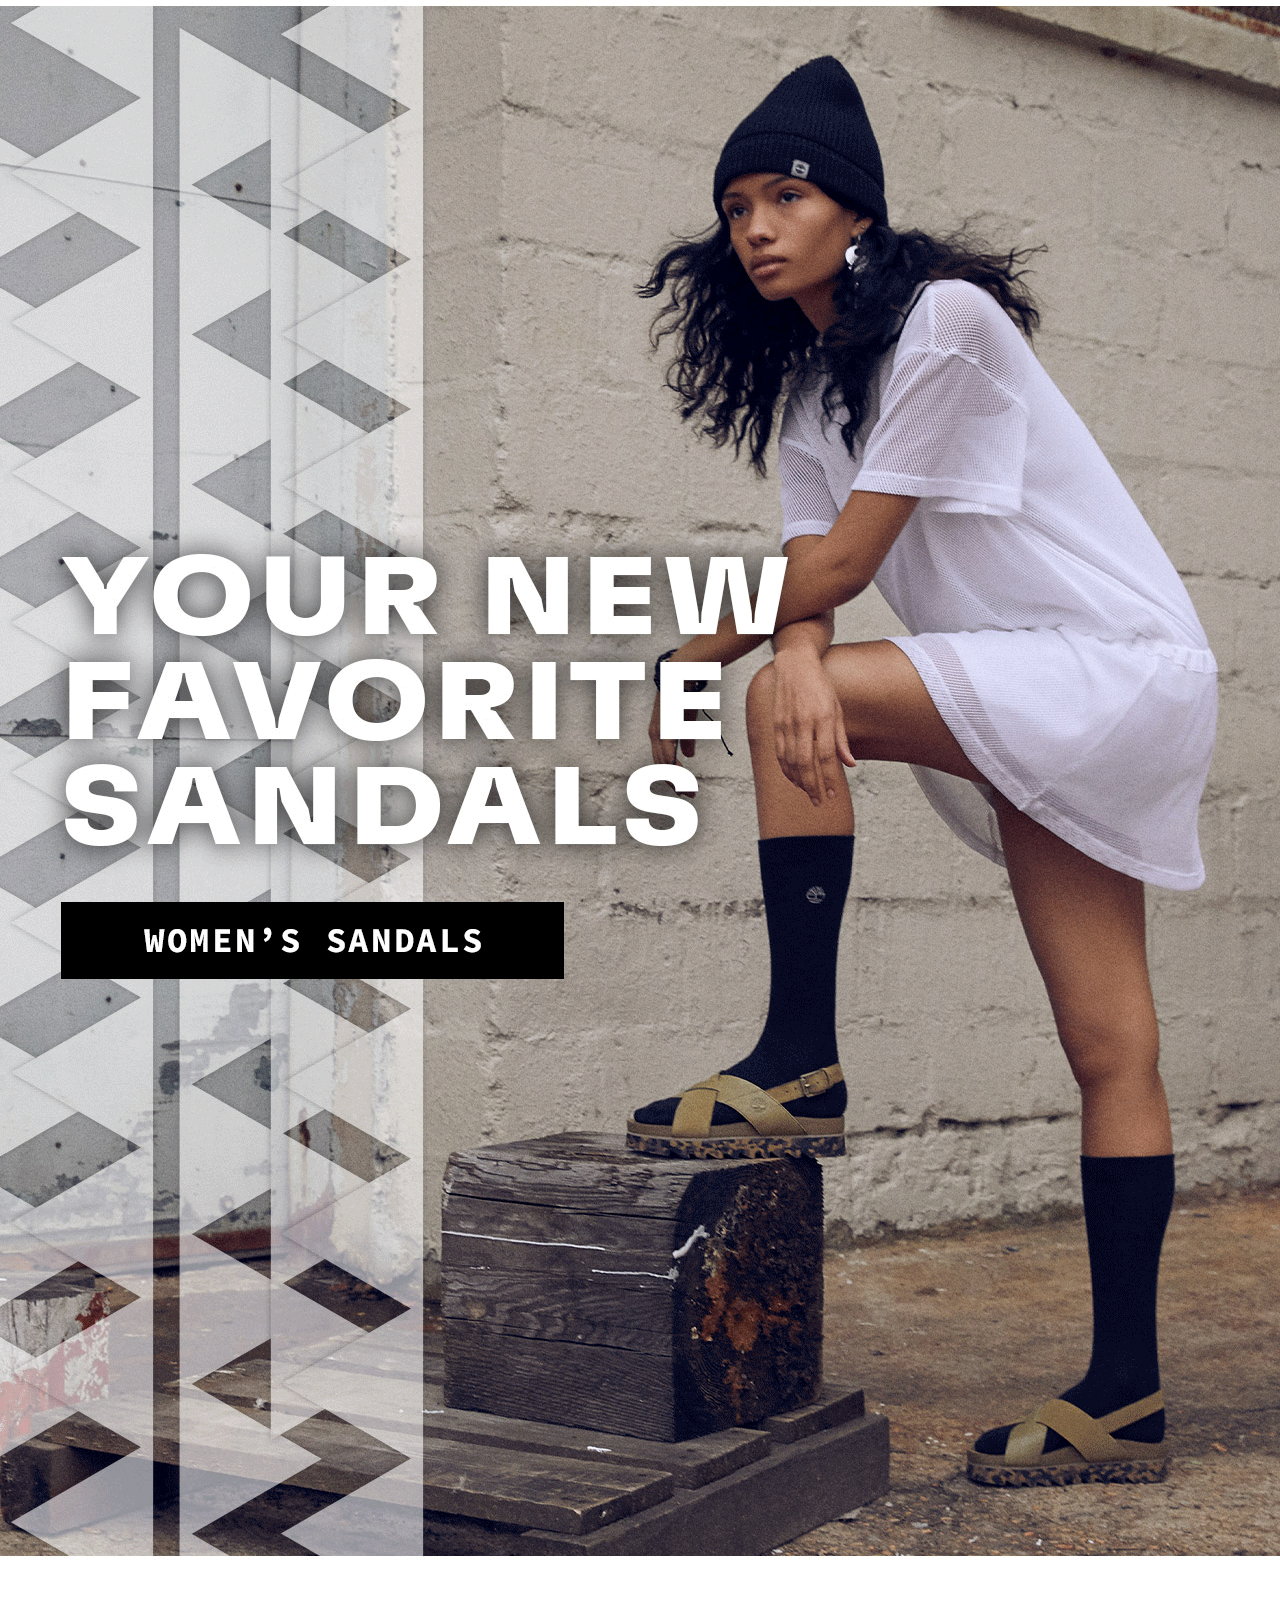 YOUR NEW FAVORITE SANDALS